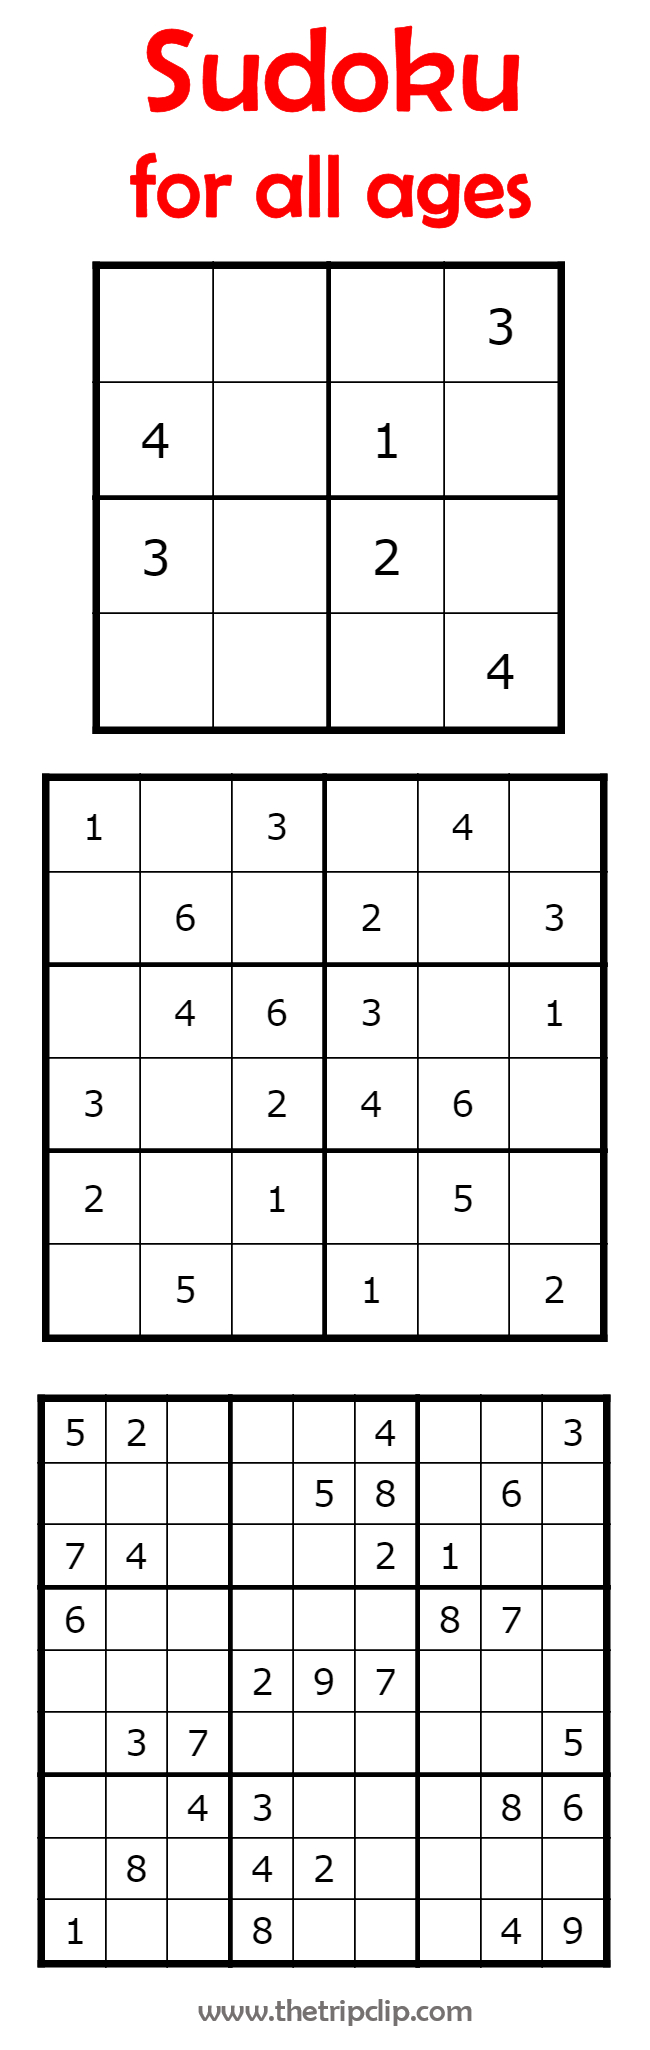 Sudoku For All Ages Plus Lots Of Other Printable Activities For Kids - Printable Sudoku Puzzles 9X9